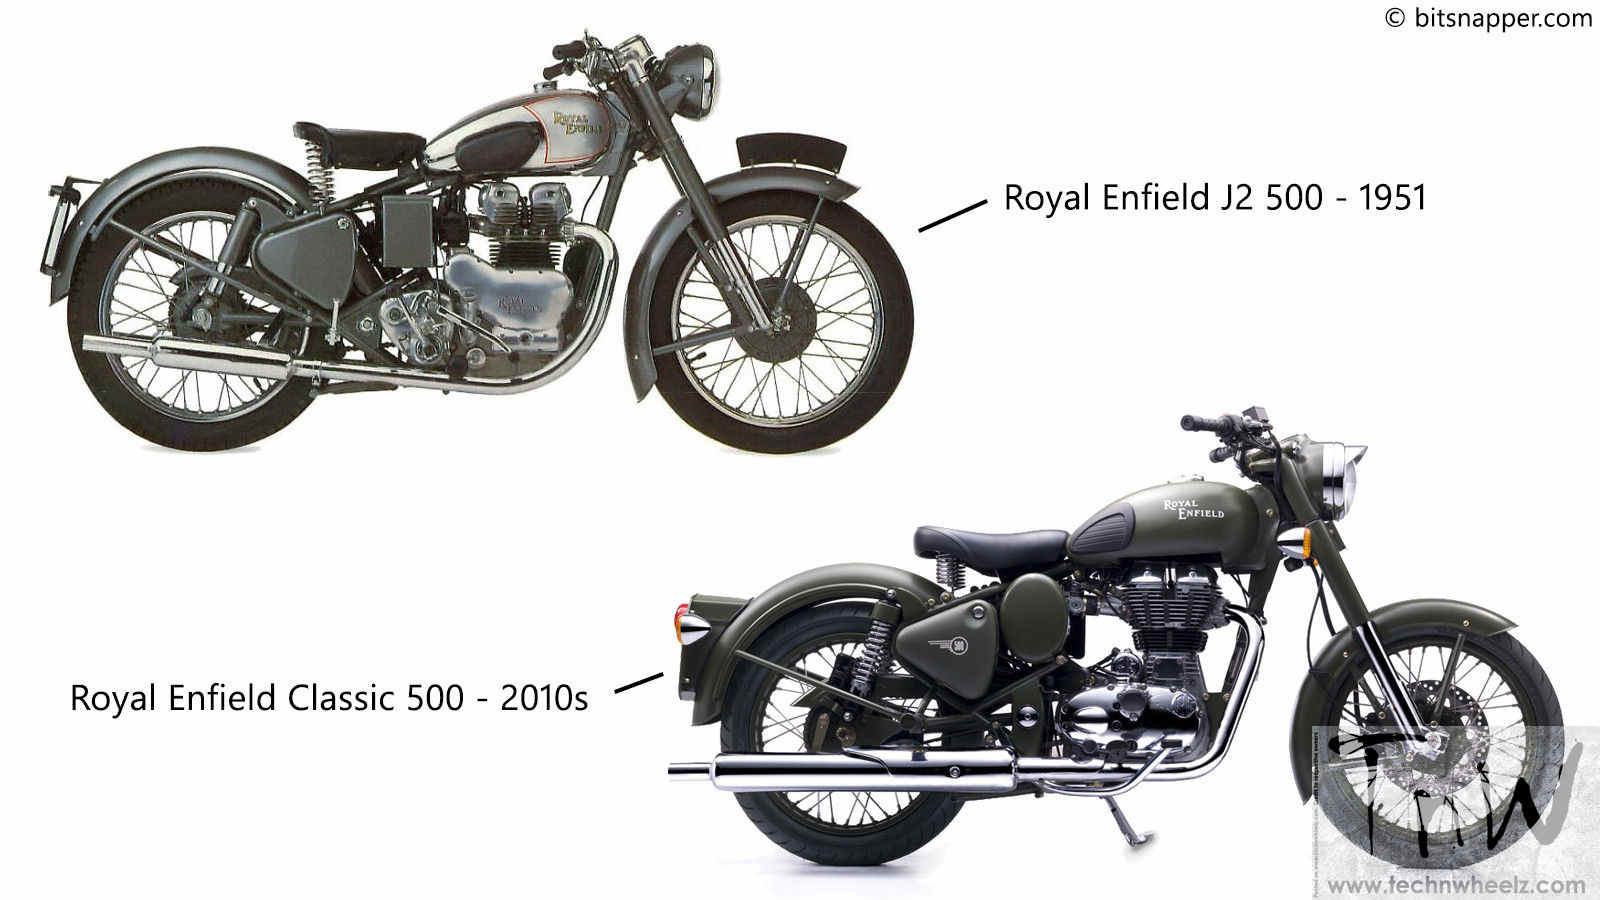 3y83a Wiring Diagram Craftsman Riding Lawn Mower Need One together with Royal Enfield Redditch Classic 350 Paint Images Modified Sale likewise Diagram Of Harley Davidson Fork Seal as well Mag o Ignition System together with Piston Clipart. on two cylinder motorcycle engine